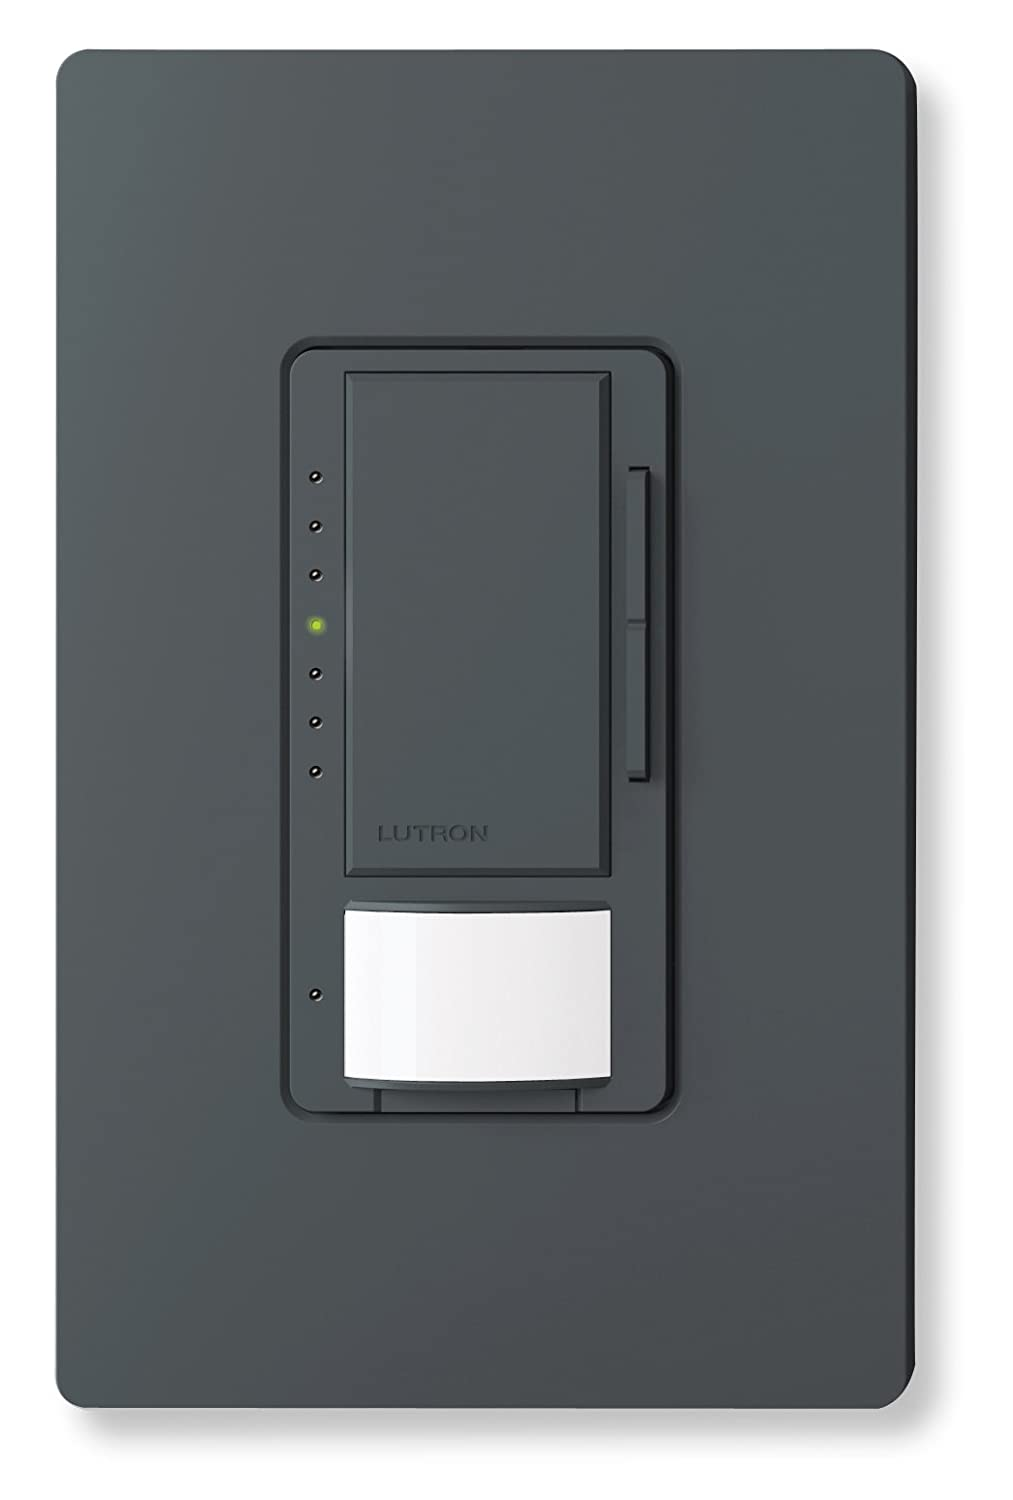 MSCL-OP153M-WH White Lutron Maestro C.L Dimmer and Motion Sensor Single-Pole and Multi-Location